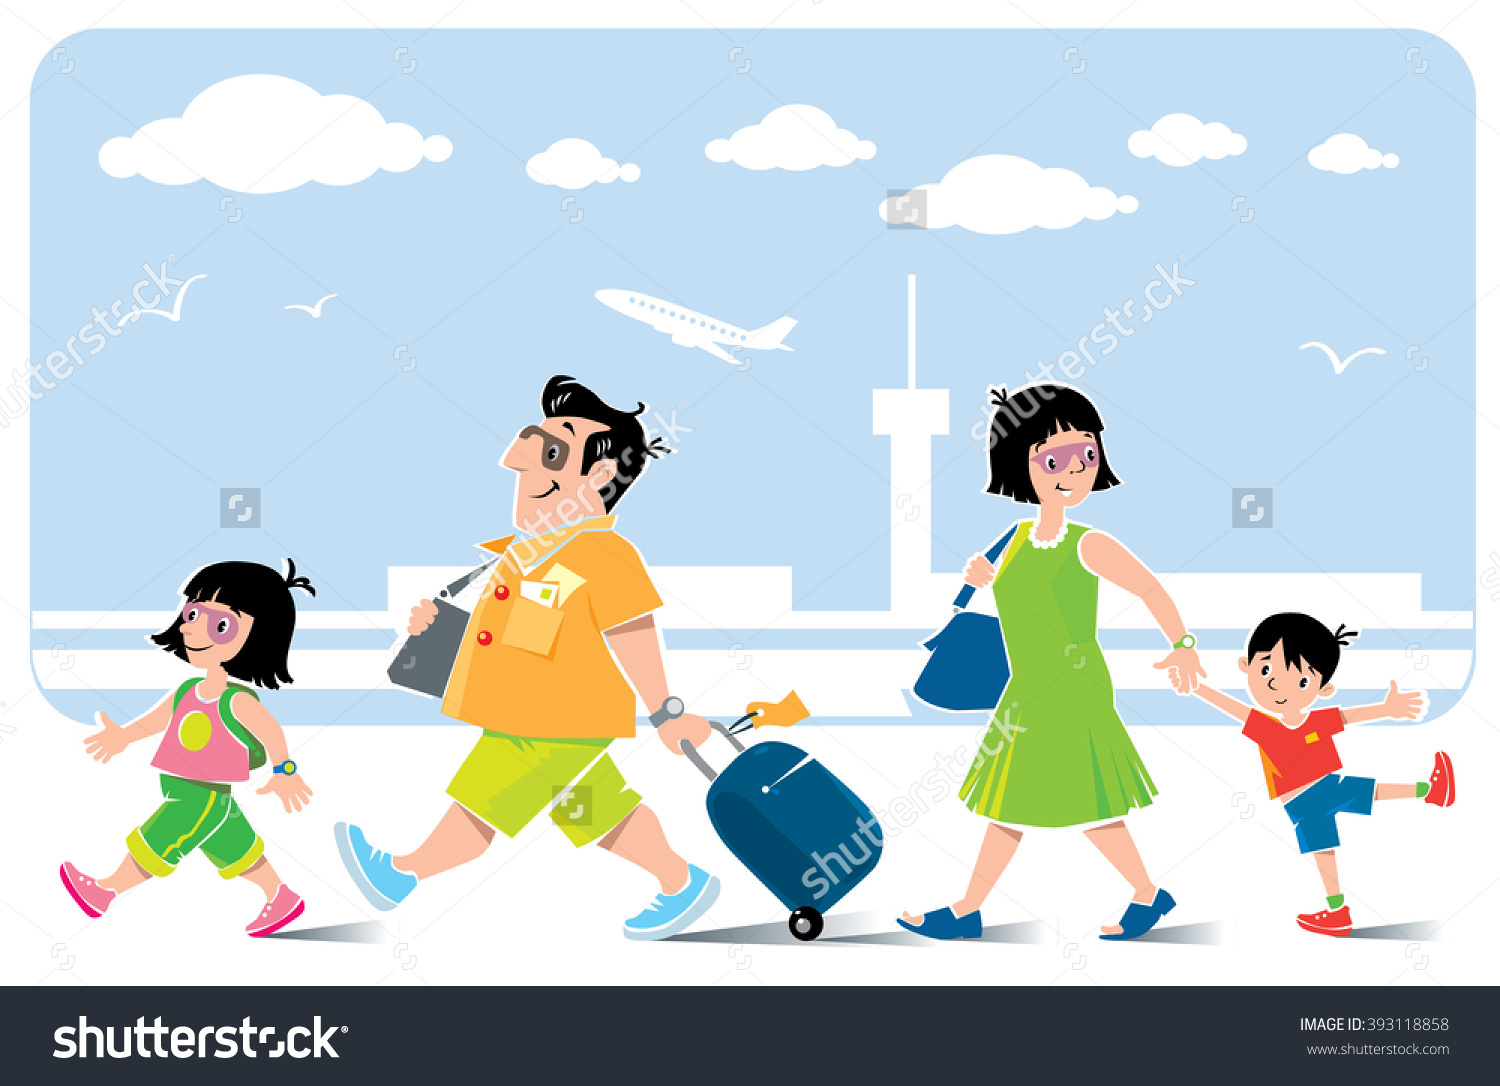 Funny Family Airport Vector Illustration Fast Stock Vector.